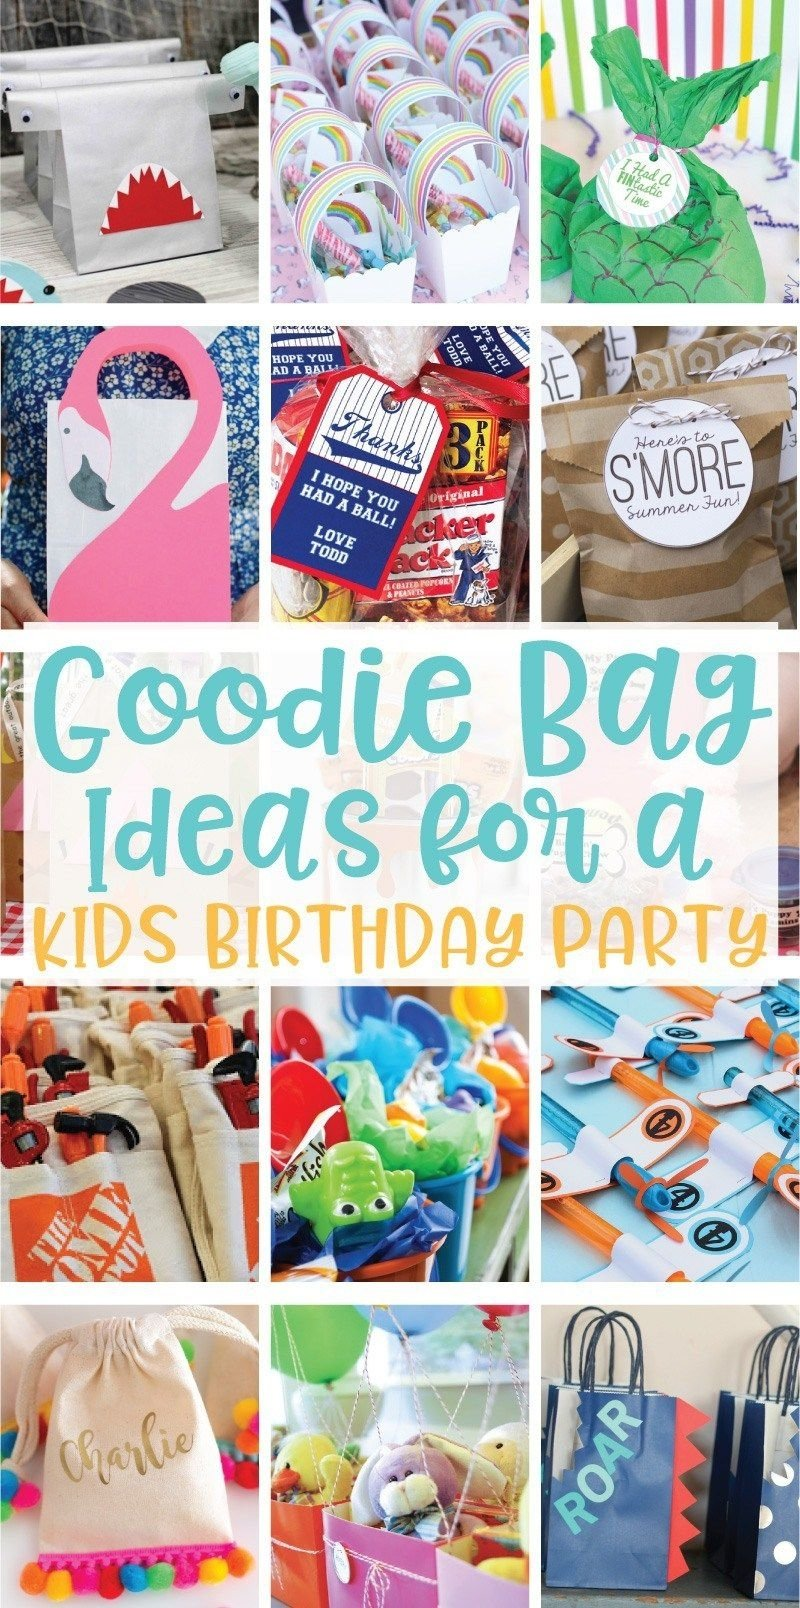 10 Attractive Birthday Party Gift Bag Ideas 20 creative goodie bag ideas for kids birthday parties on goodie 6